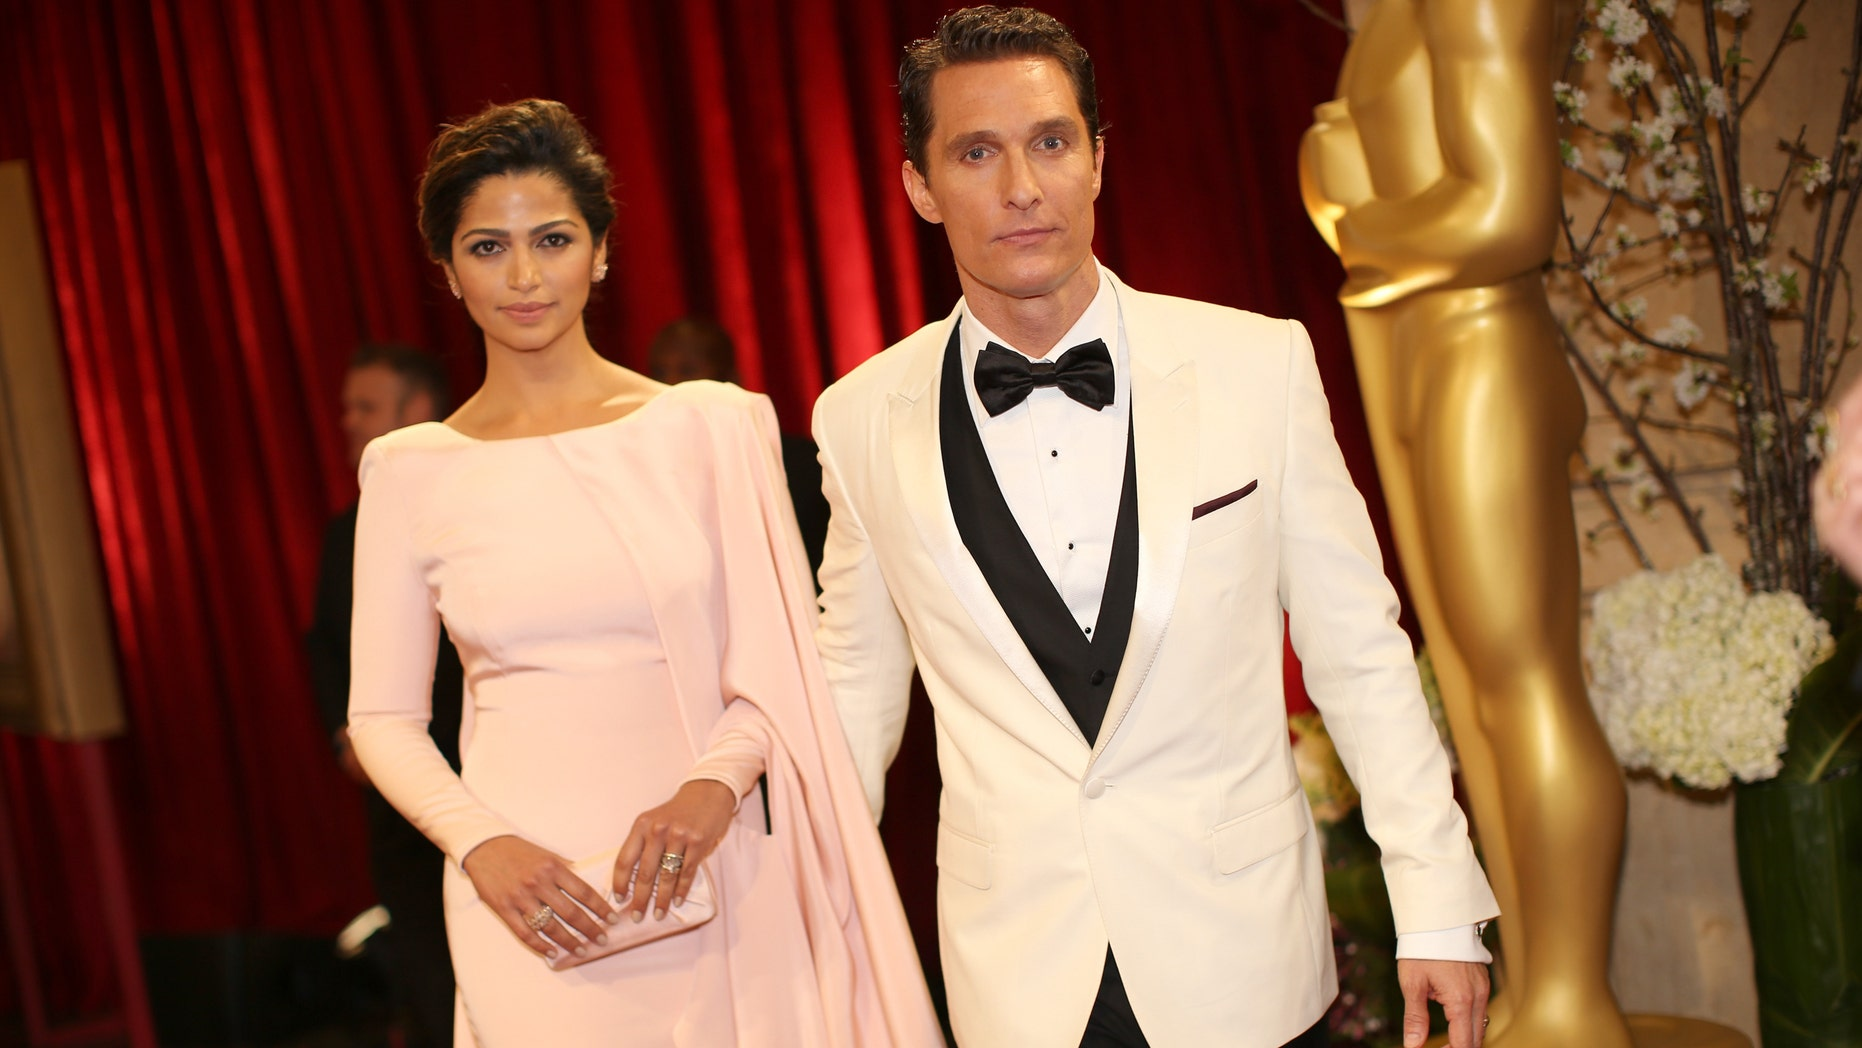 HOLLYWOOD, CA - MARCH 02:  Actor Matthew Conaughey (R) and model Camilla Alves attend the Oscars held at Hollywood & Highland Center on March 2, 2014 in Hollywood, California.  (Photo by Christopher Polk/Getty Images)